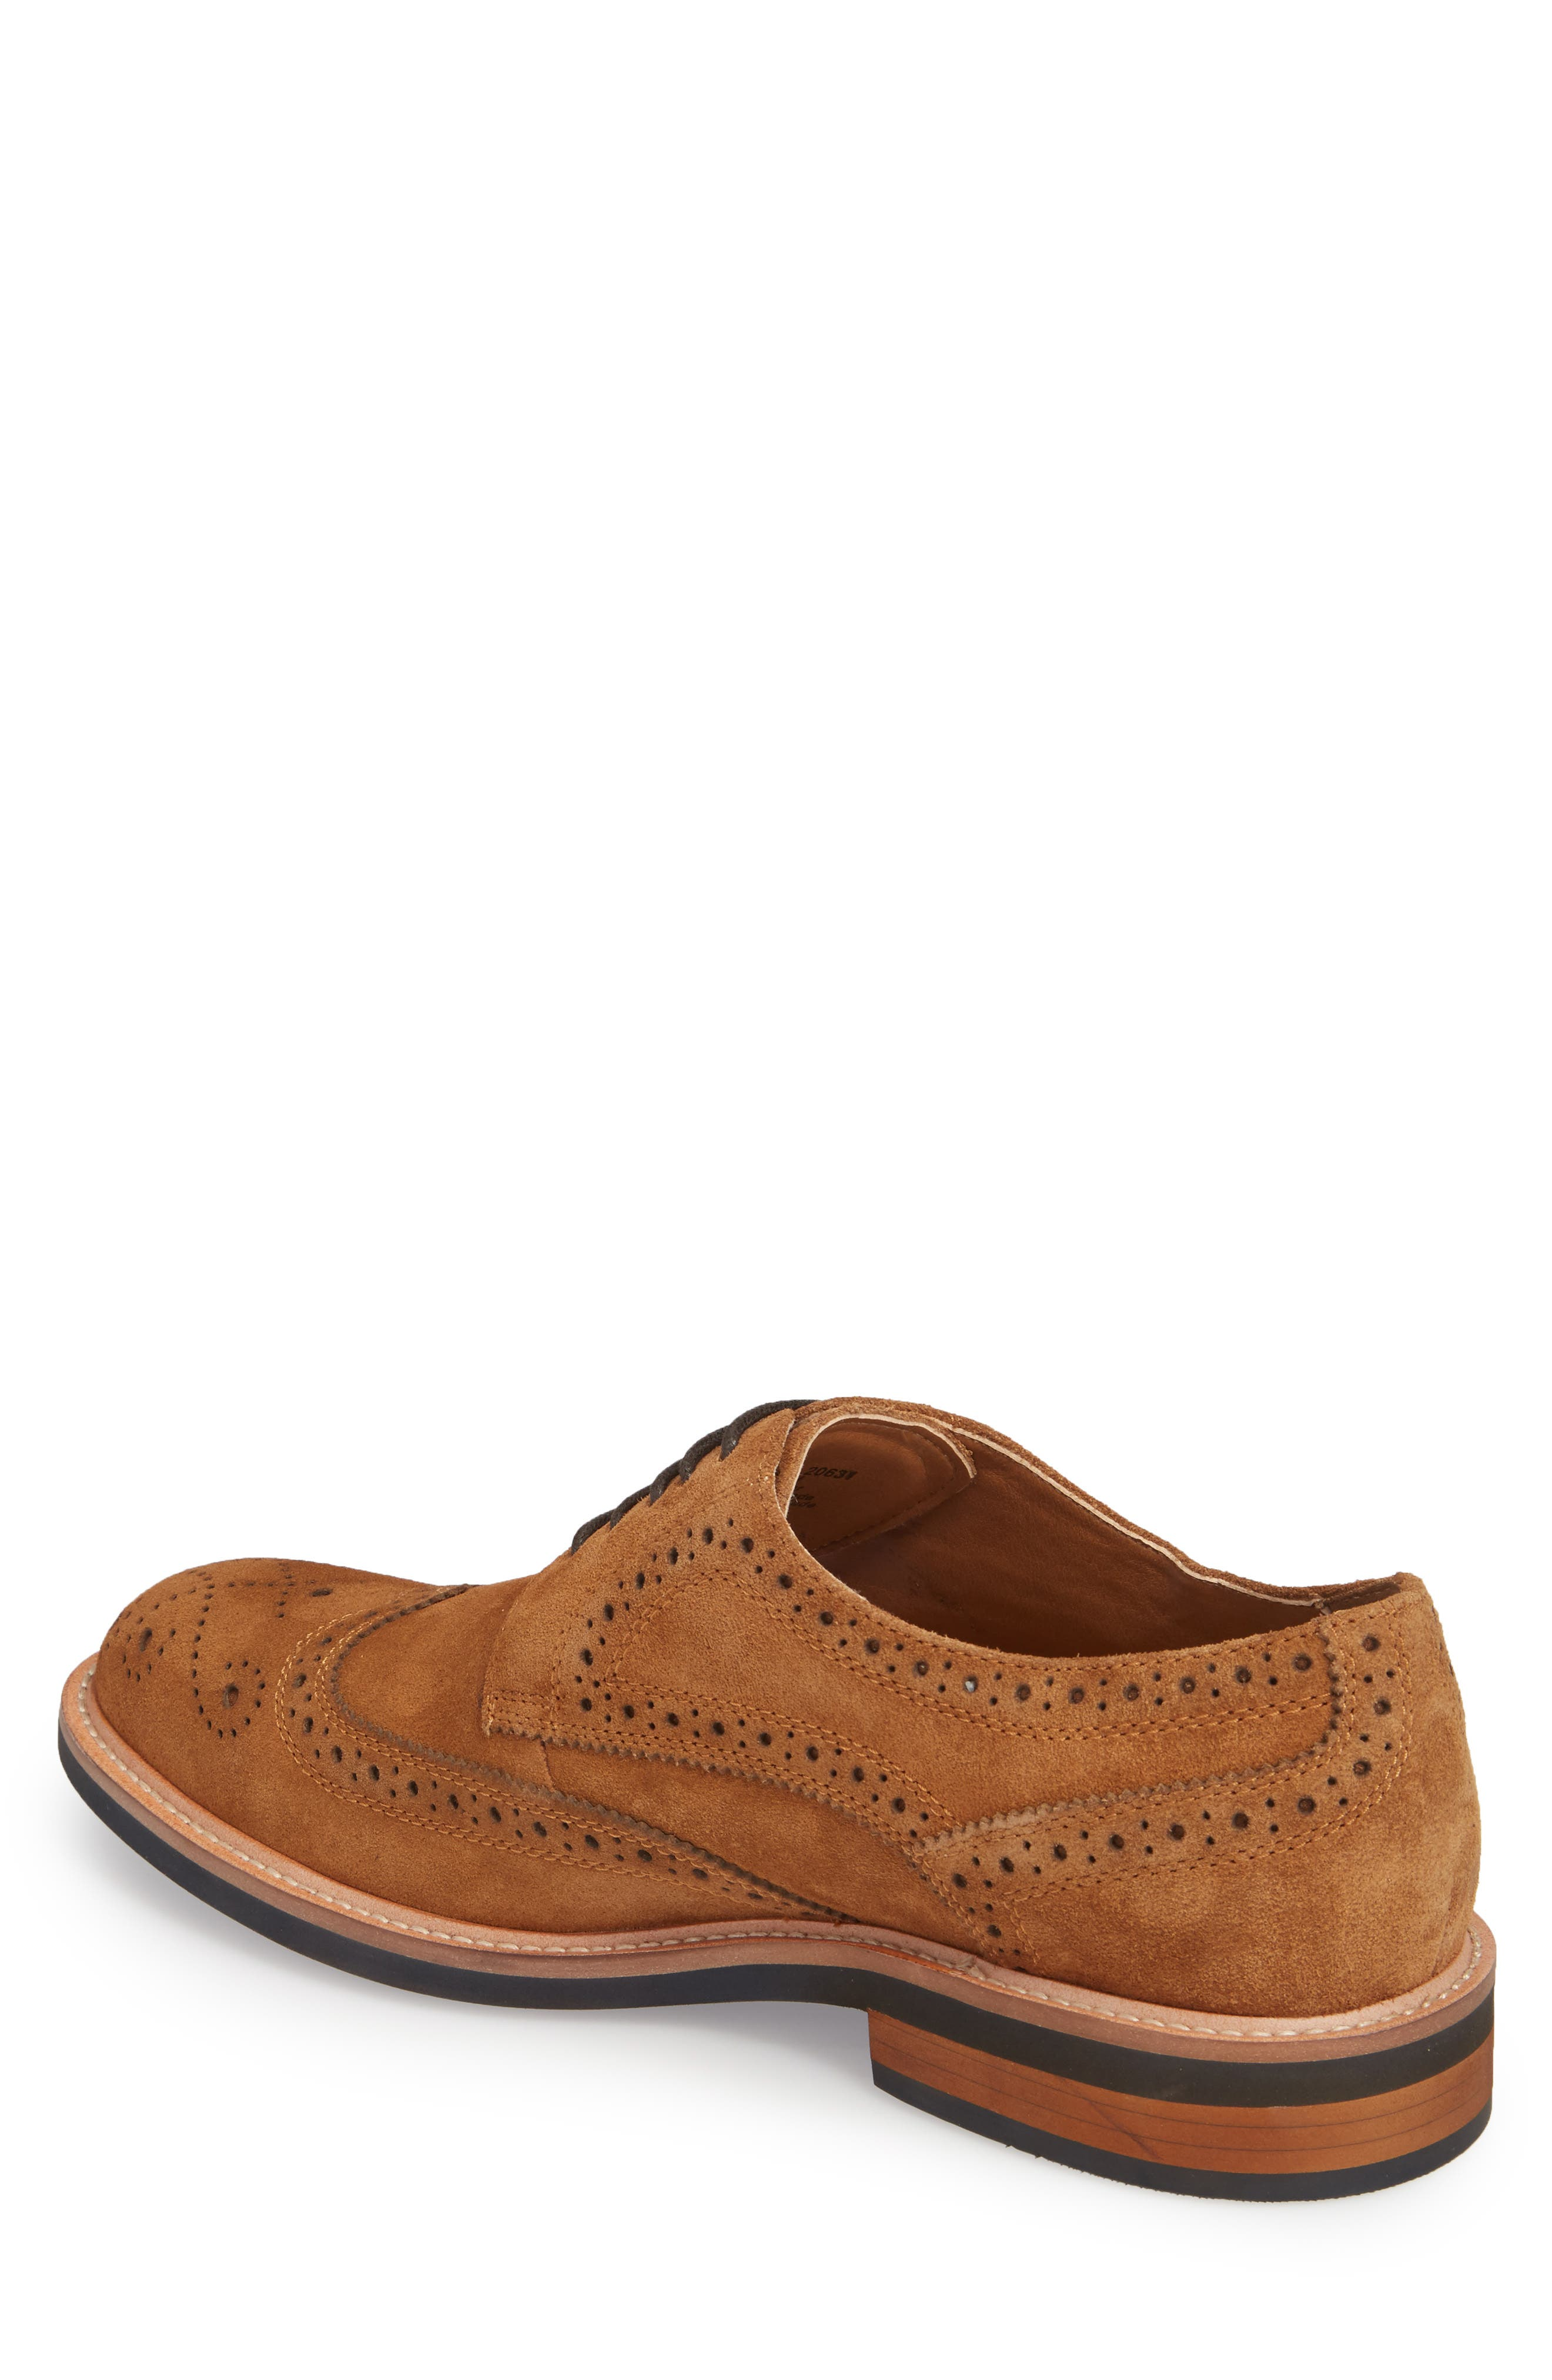 Kenneth Cole Reaction Wingtip,                             Alternate thumbnail 6, color,